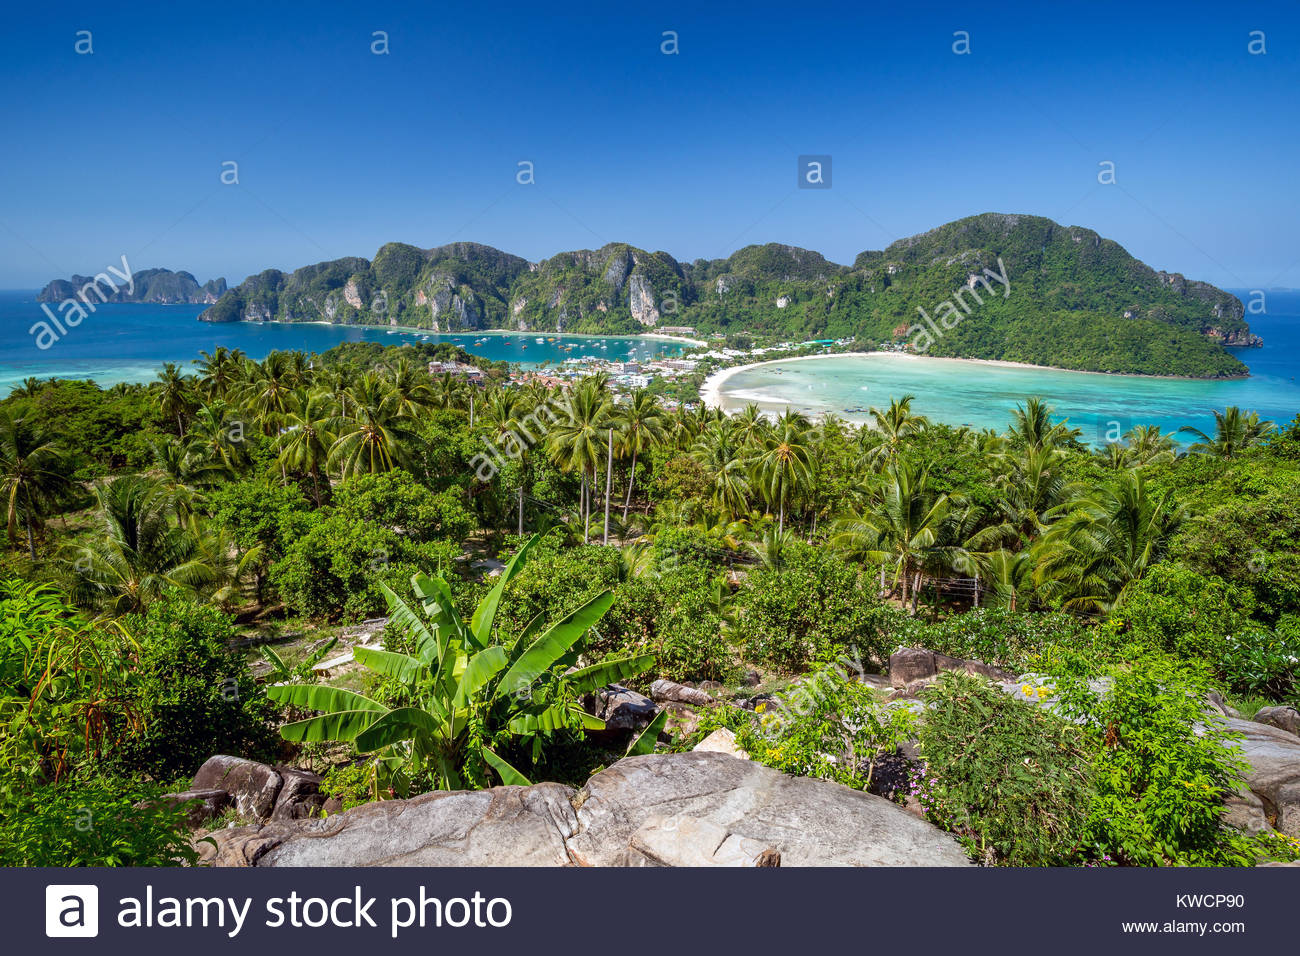 Koh Phi Phi Don Viewpoint showing Tonsai Bay (left), Loh Dalam Bay (right) and Phi Phi Ley (far left) - Thailand Stock Photo